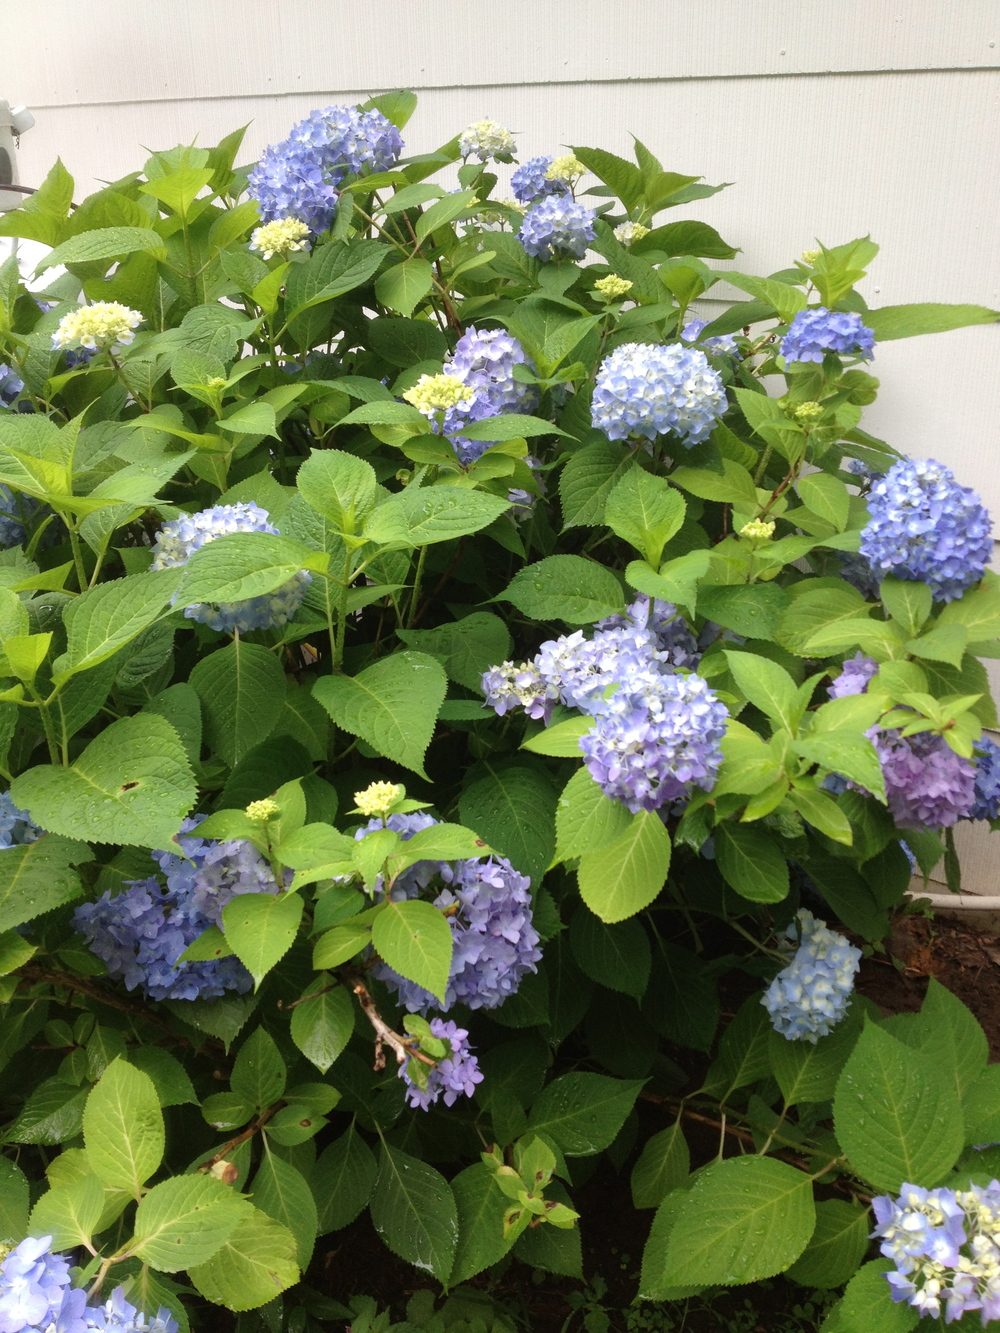 And here's a bonus from outside of the vegetable garden: the hydrangea are in bloom!  So great for making arrangements.  The flower color is dictated by the acidity of the soil!